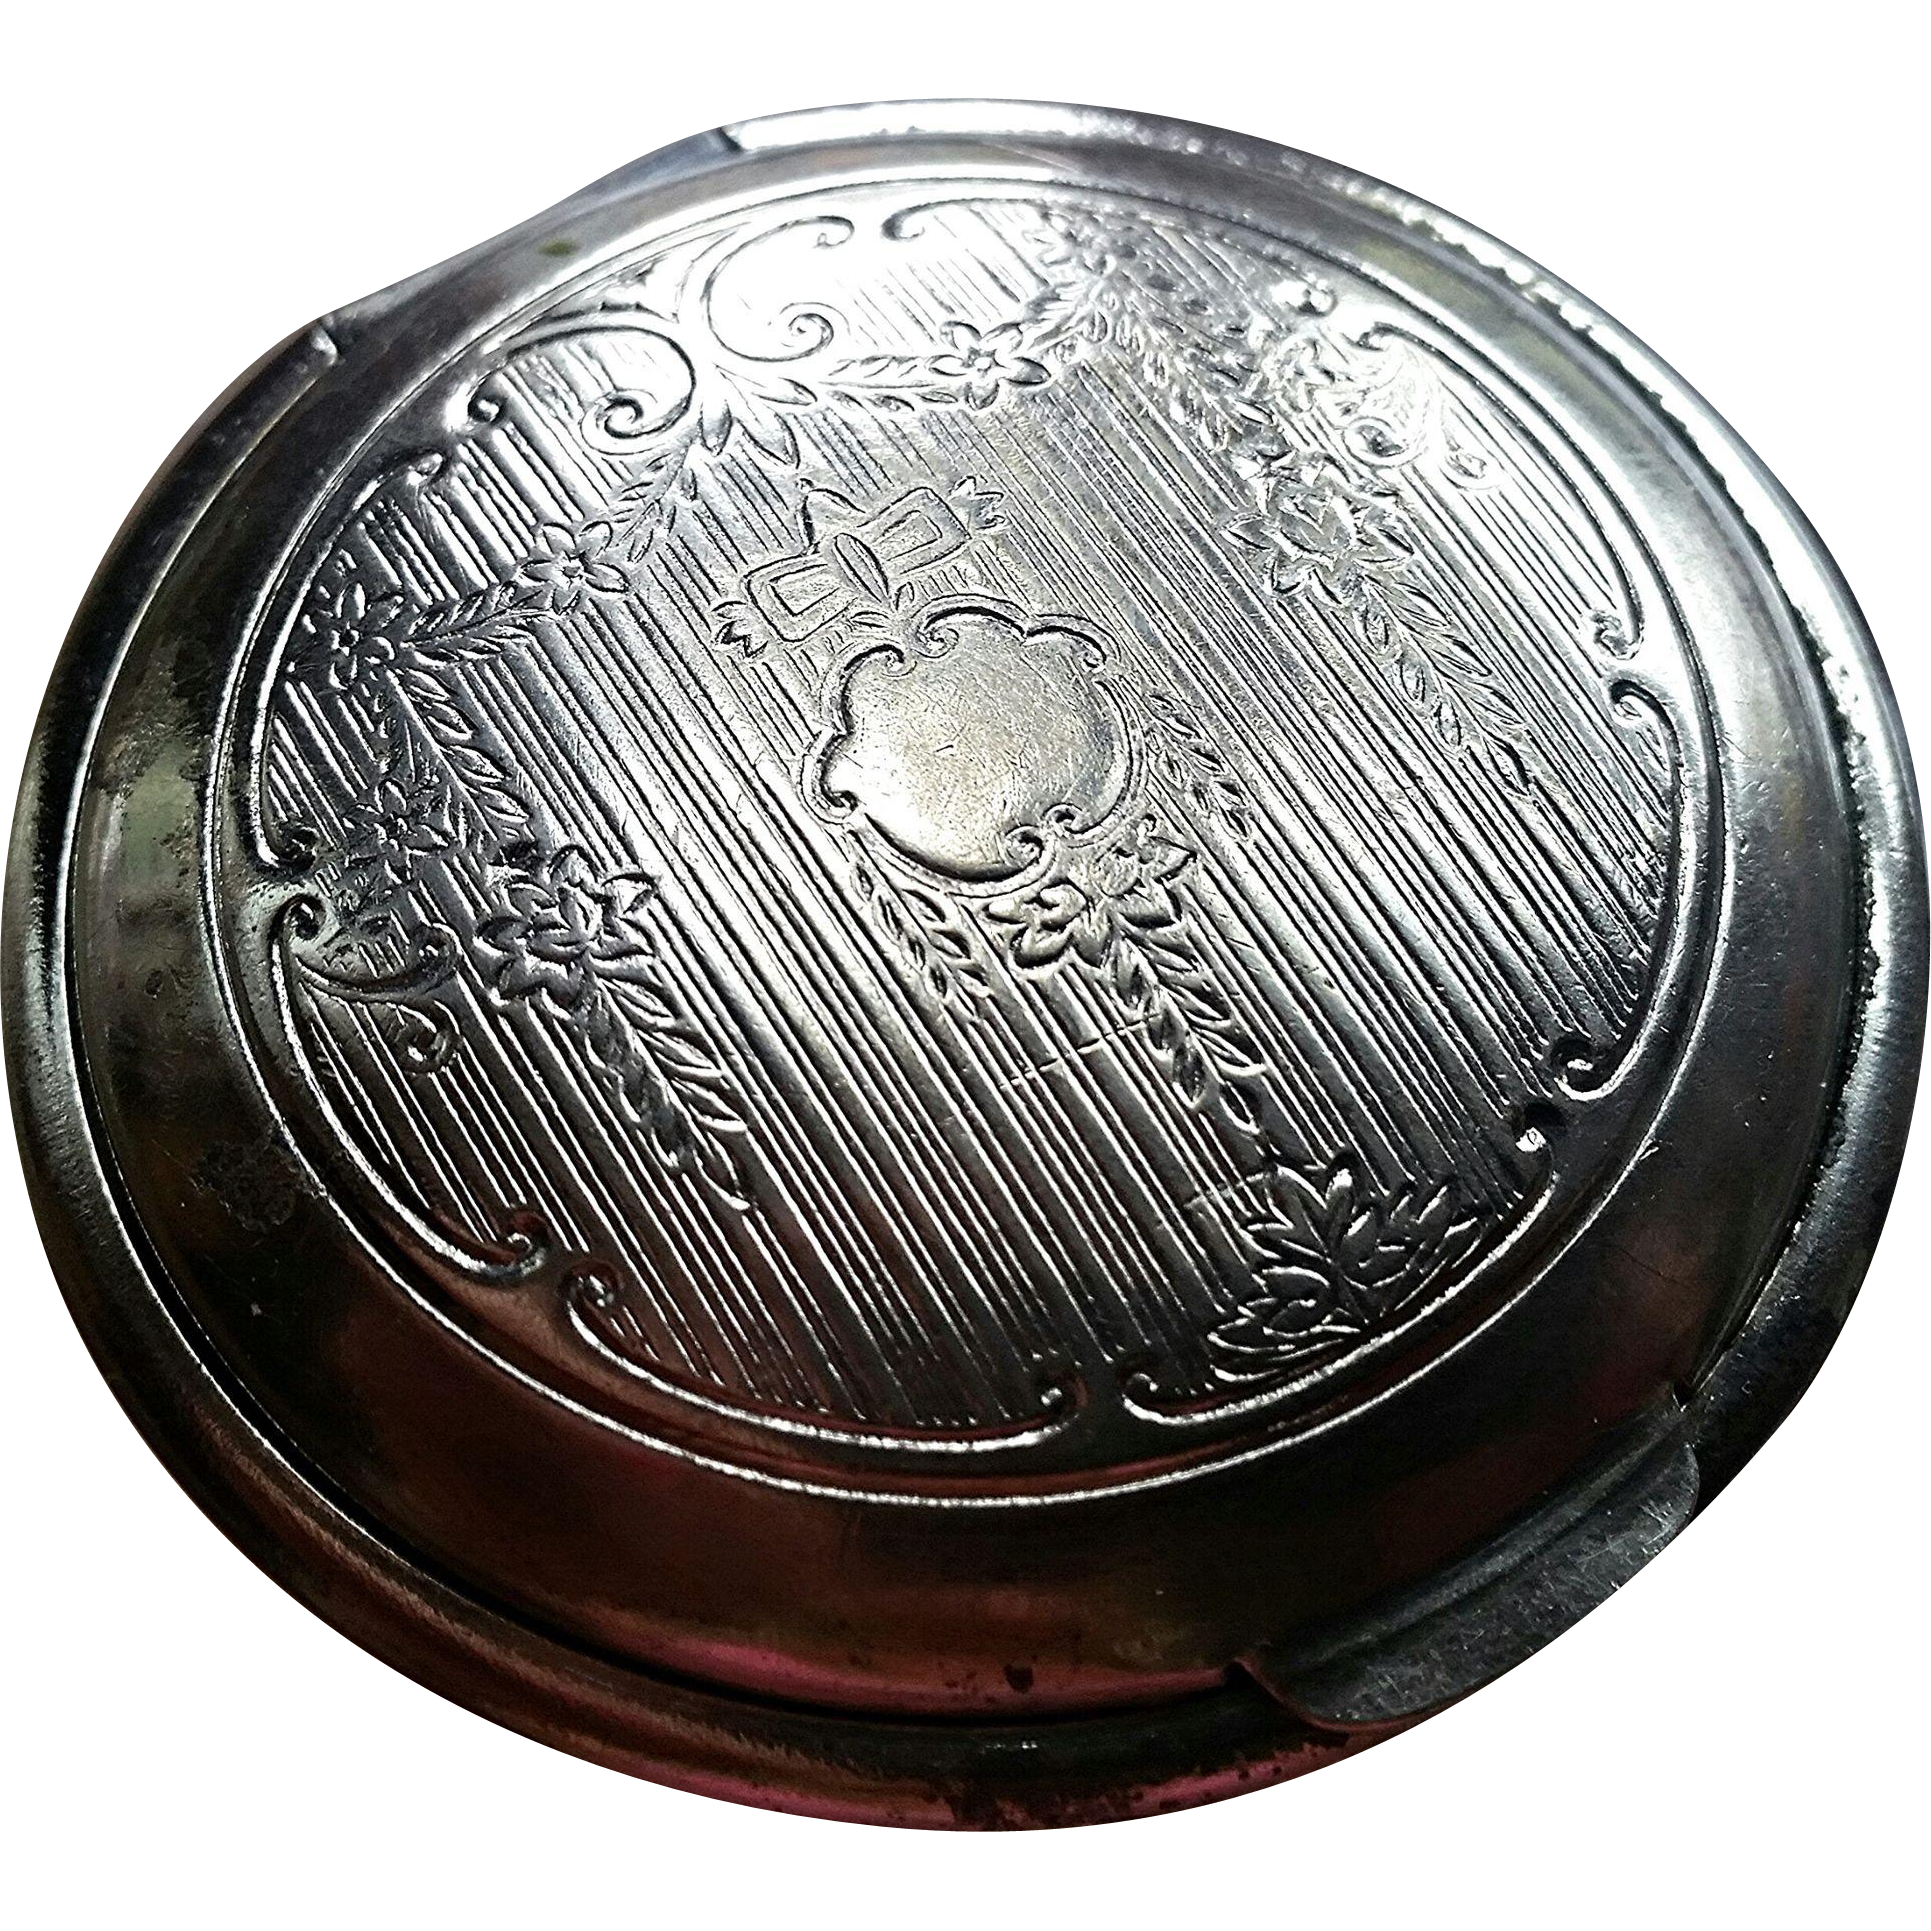 Elmo cosmetics, Art Deco powder compact, vintage